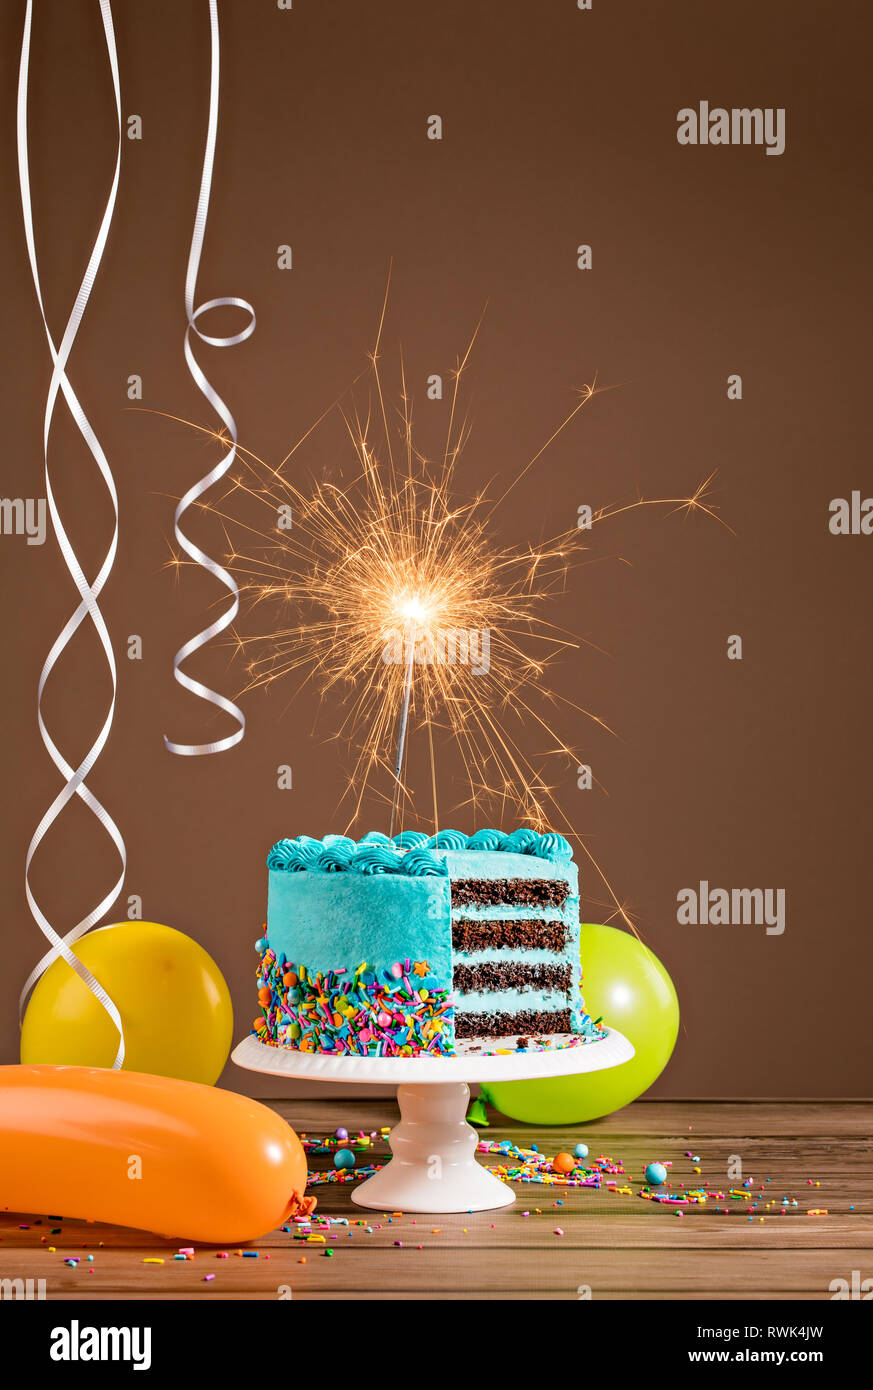 Fabulous Blue Birthday Cake With Sparkler And Colorful Balloons Stock Photo Funny Birthday Cards Online Inifodamsfinfo